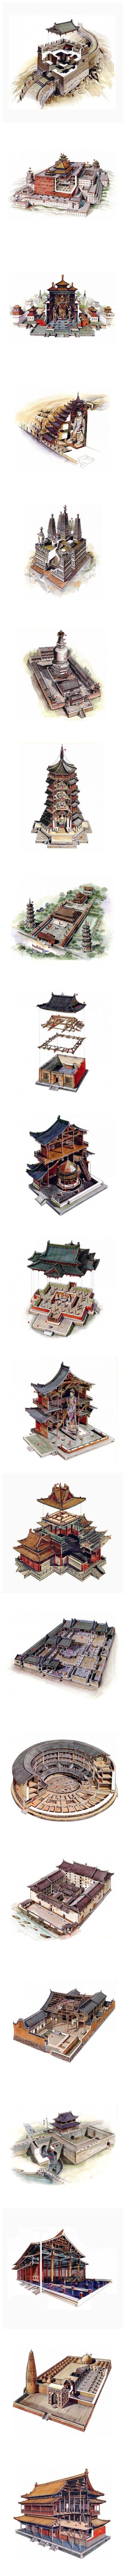 Traditional Chinese Architecture- cutaway views of traditional monumental architecture